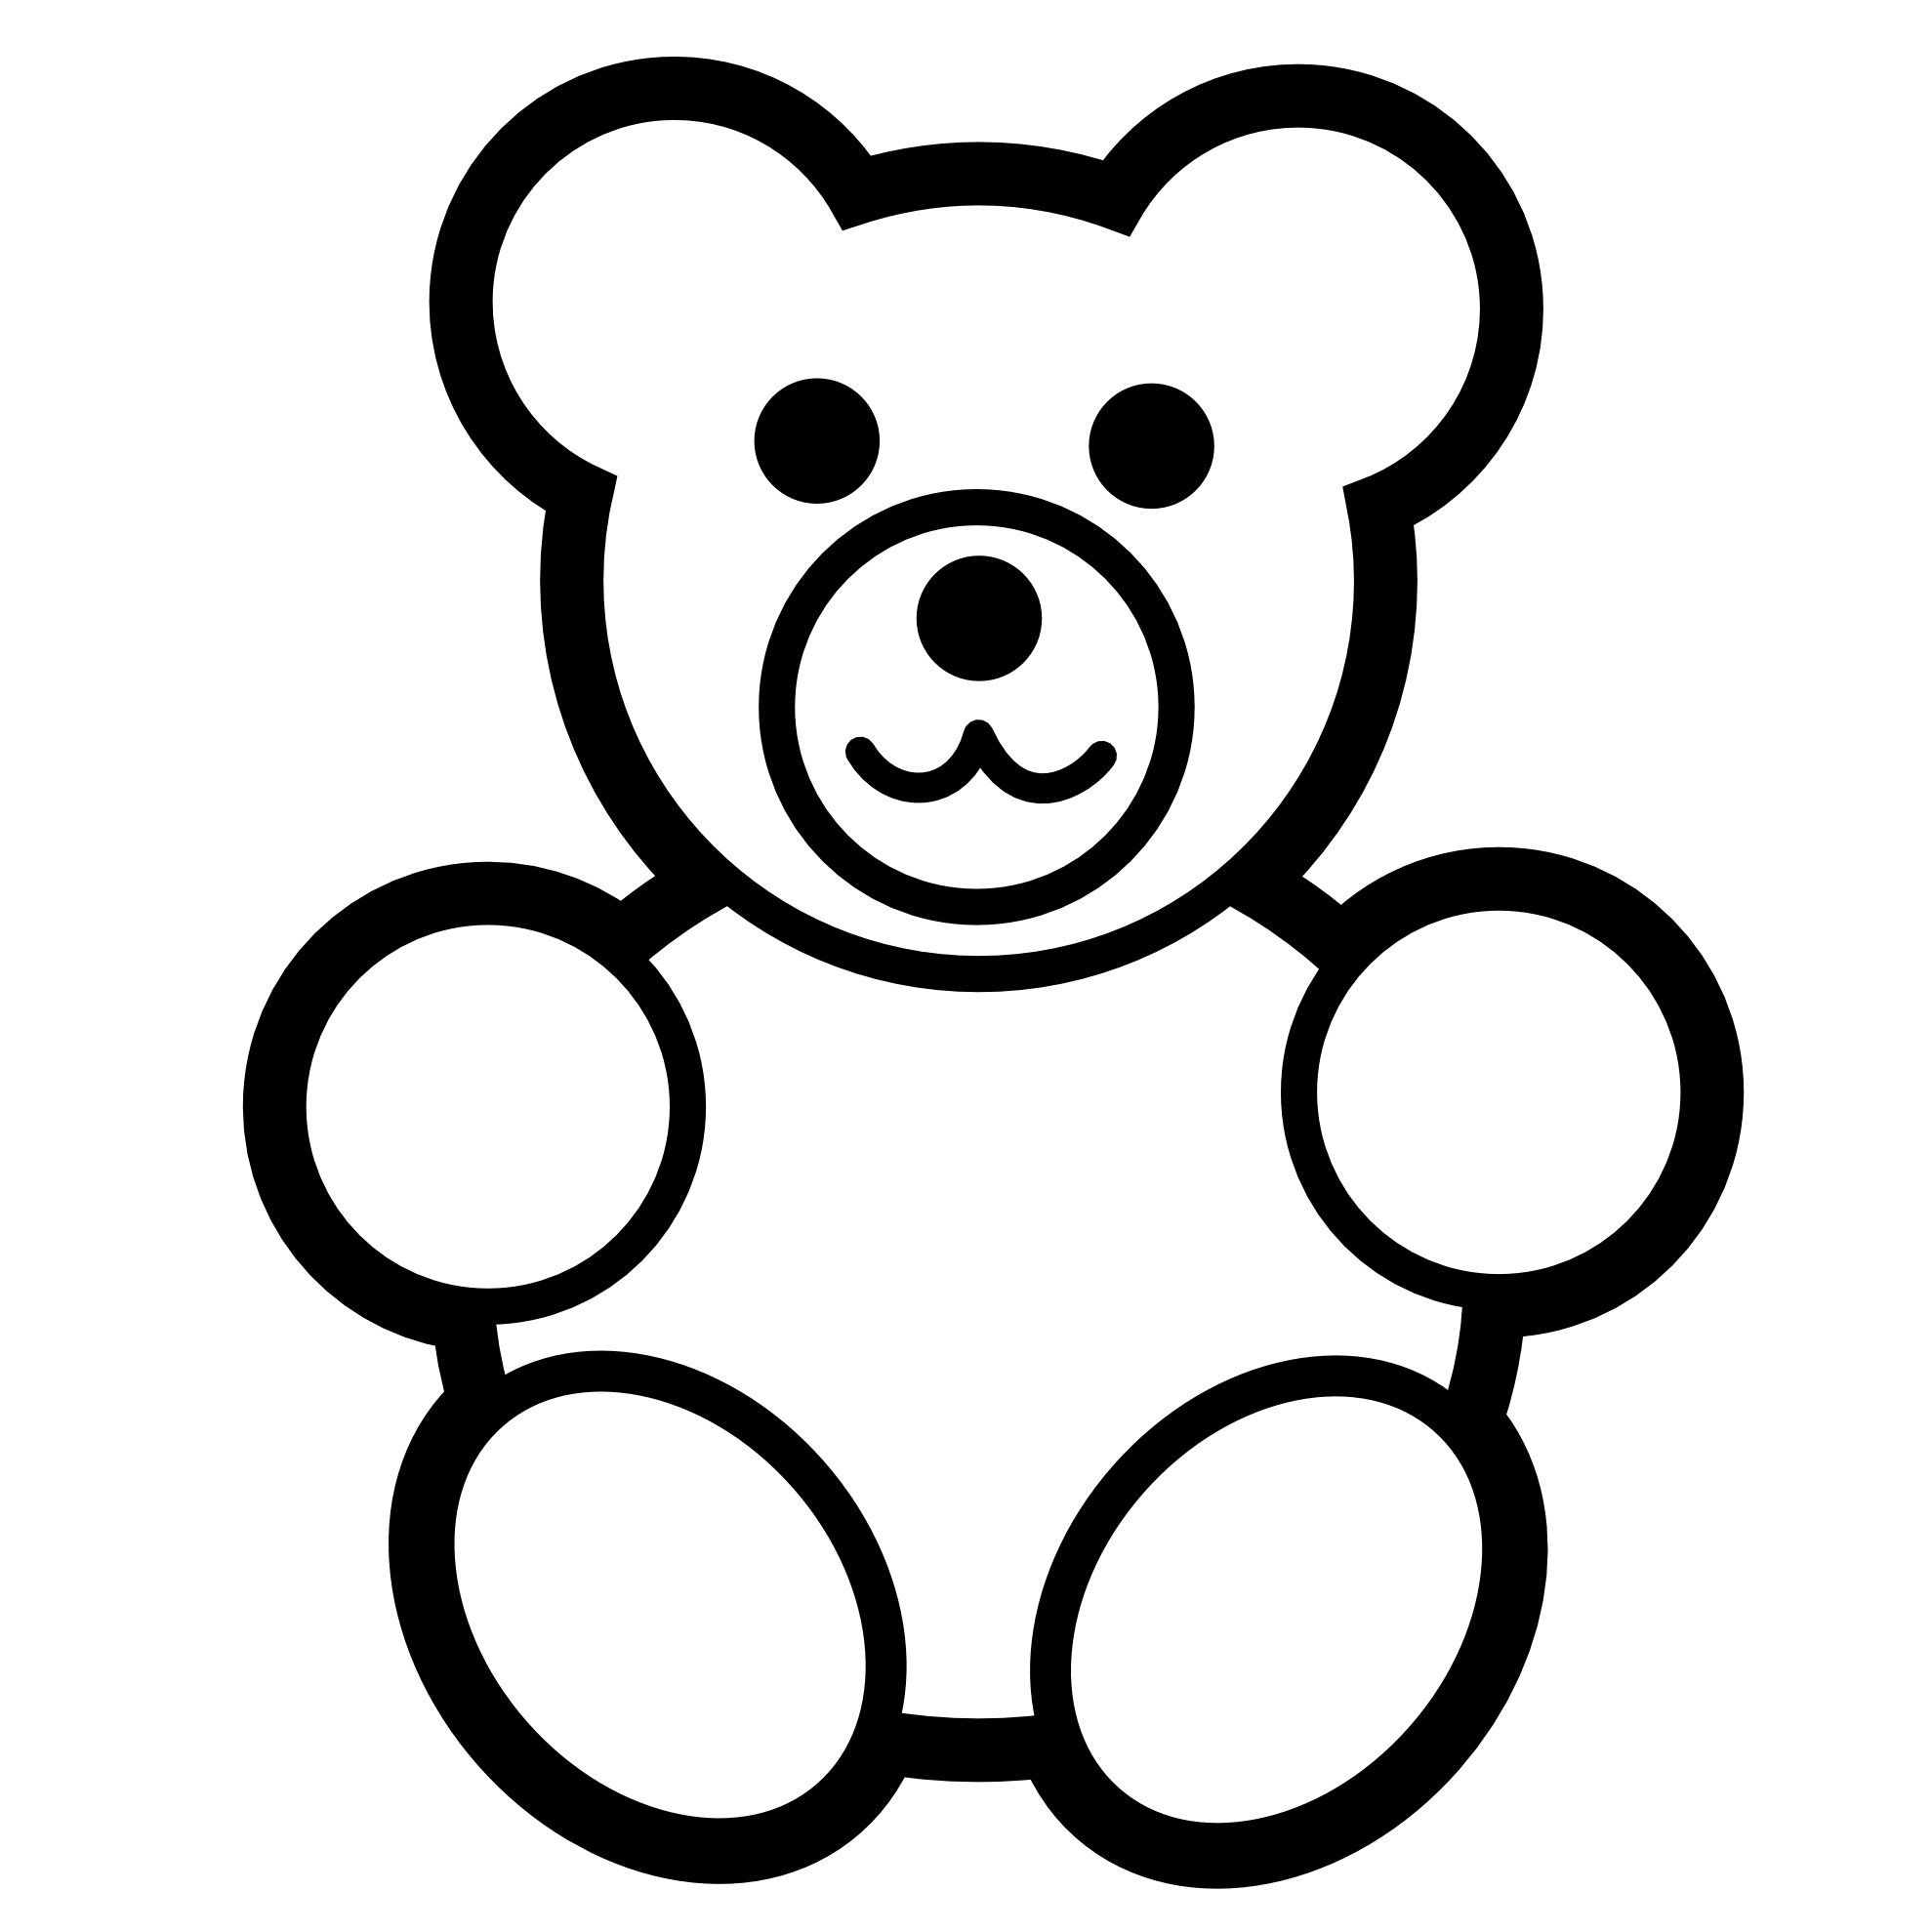 Teddy drawing at getdrawings. Bear clip art simple graphic library